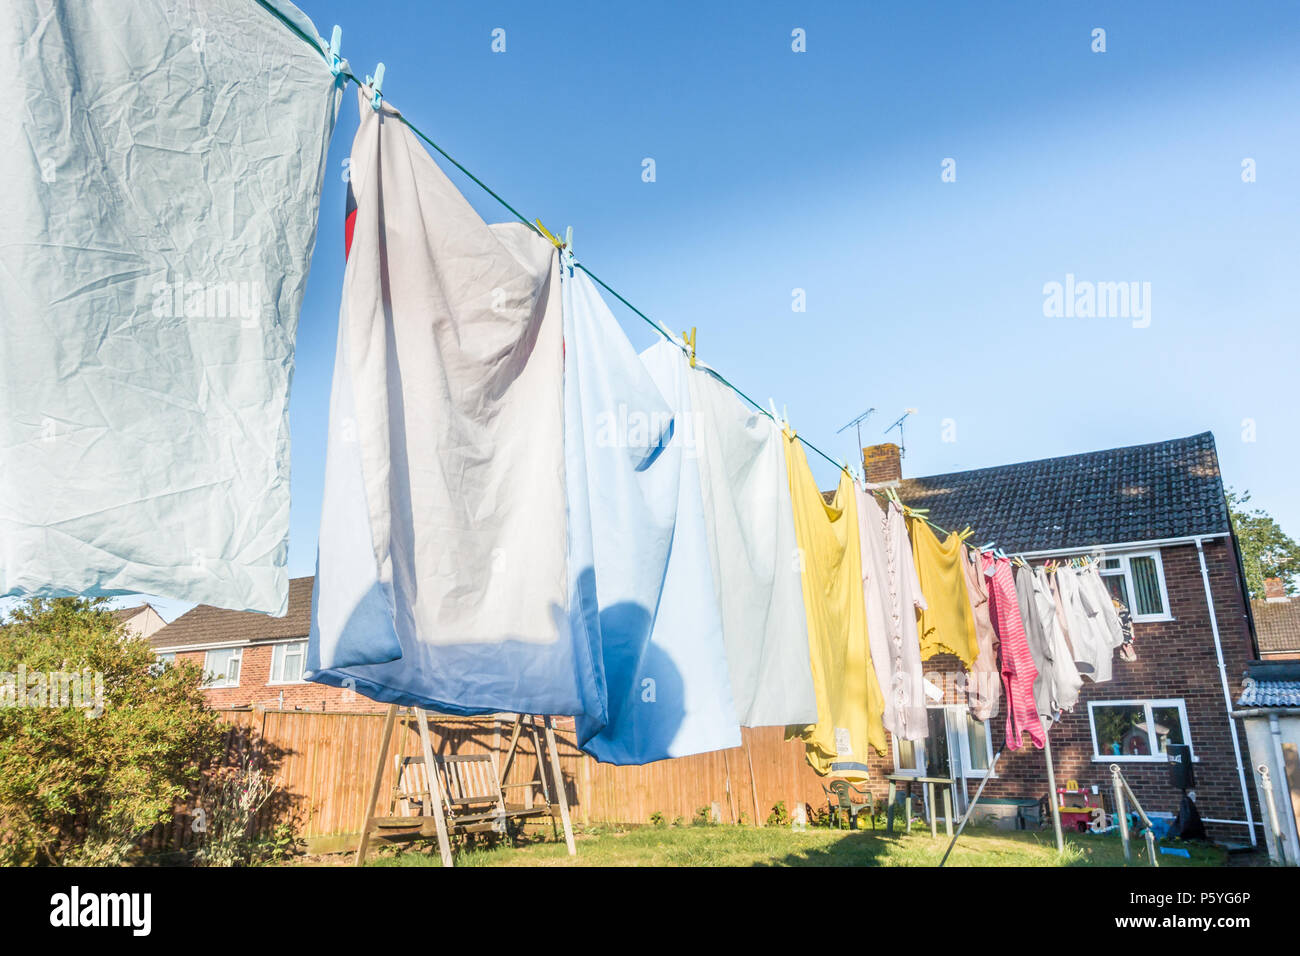 clothes-hanging-on-a-washing-line-in-a-residential-garden-to-dry-P5YG6P.jpg